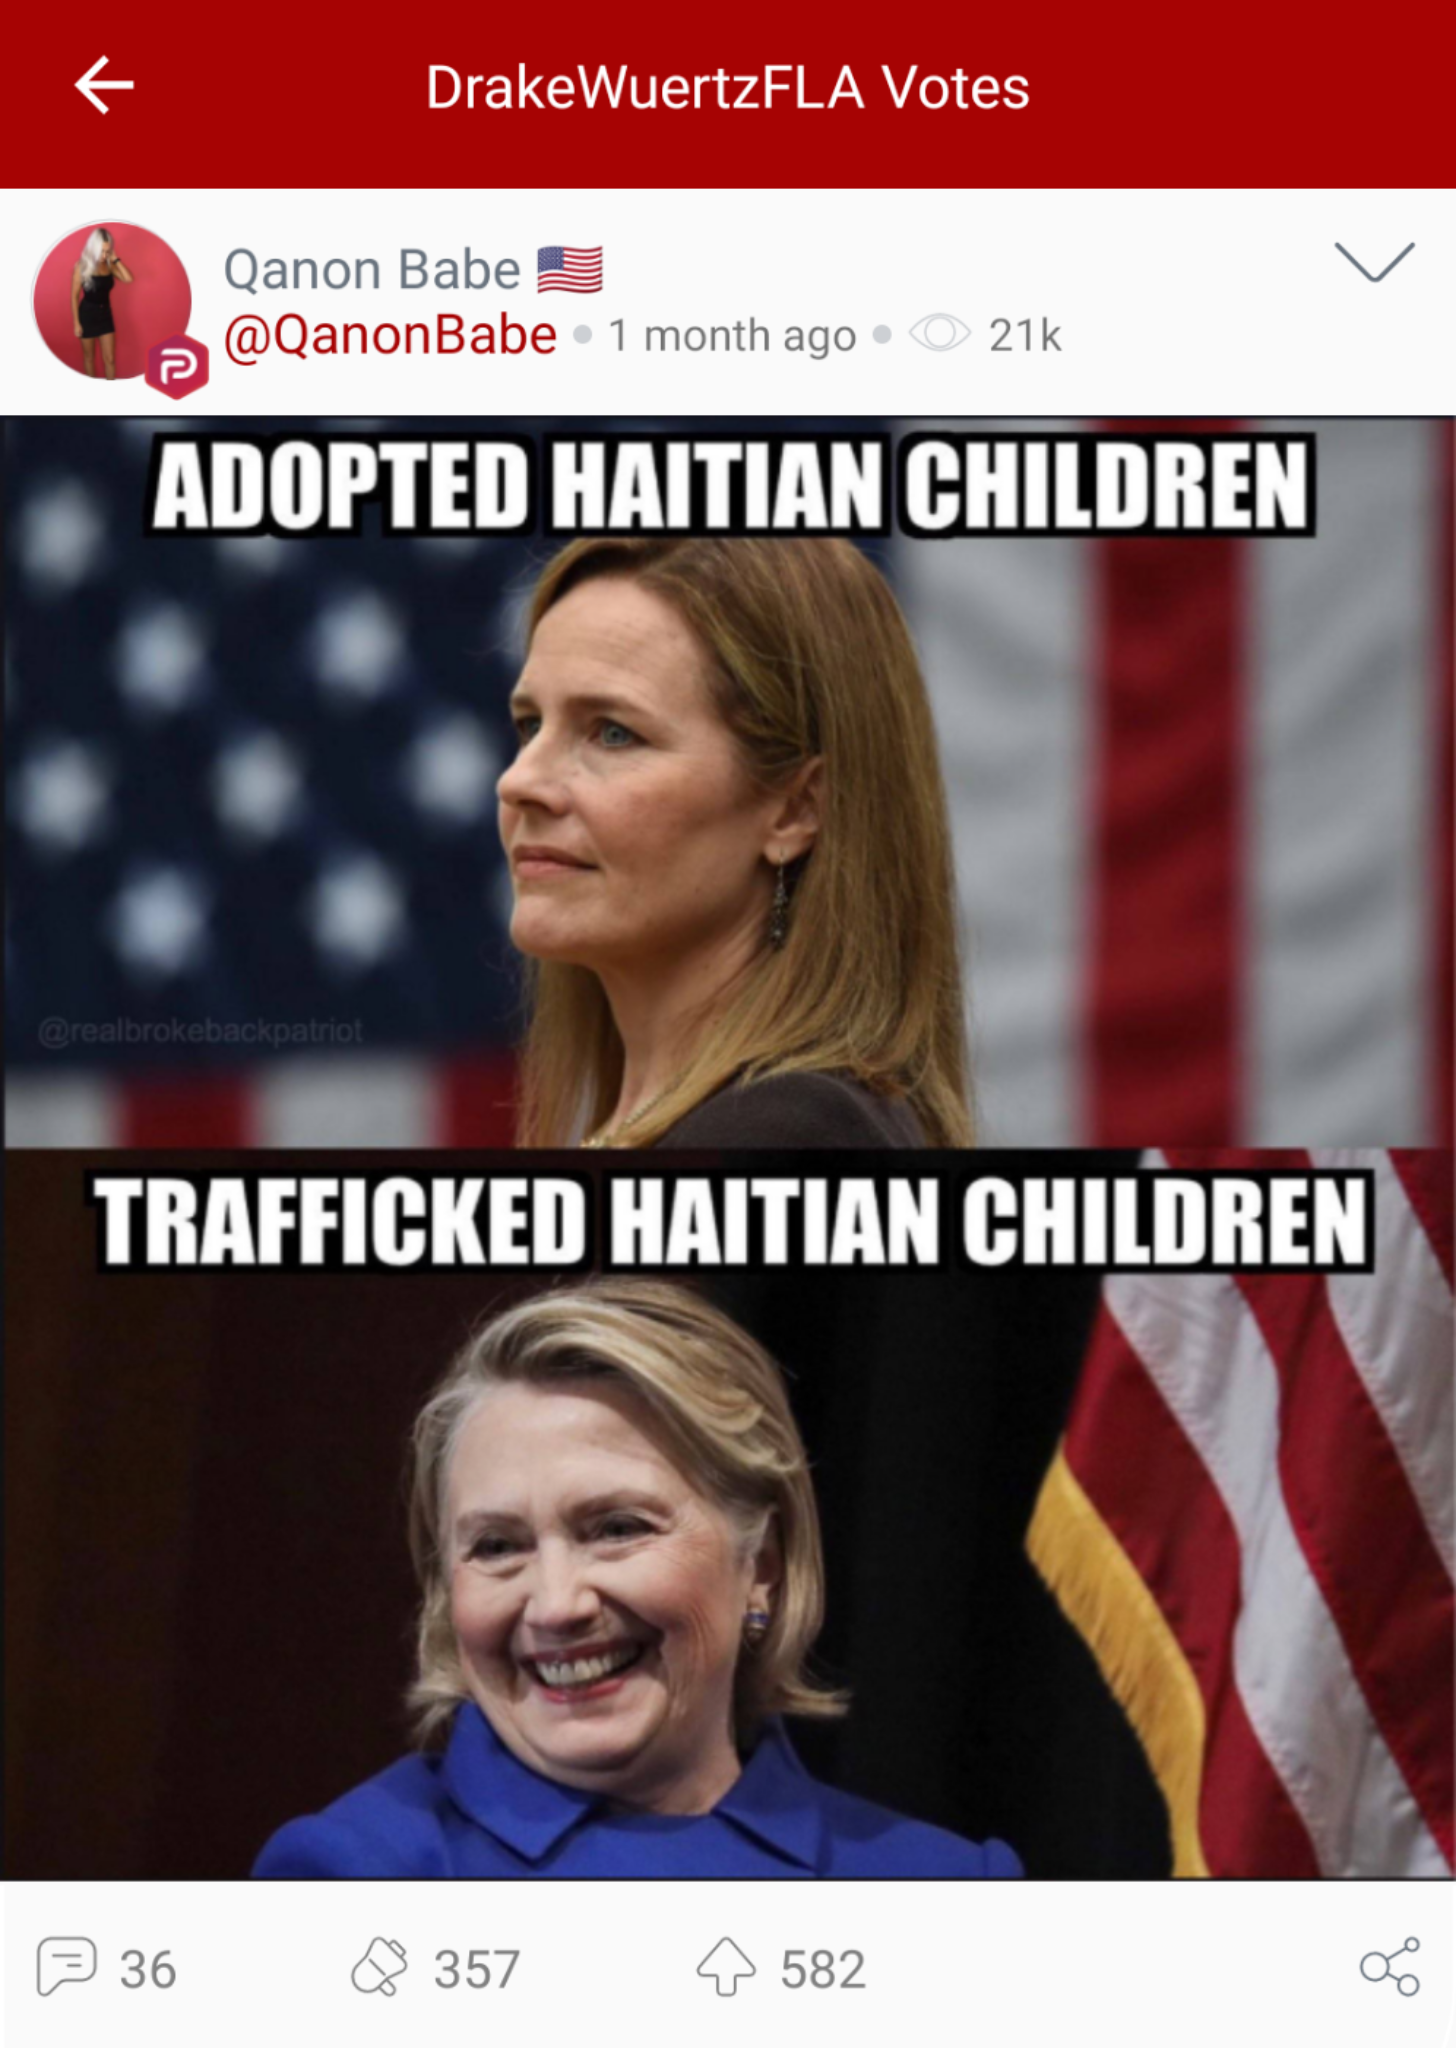 "@DrakeWuertzFLA ""votes"" a Parler post from ""QAnon Babe"" that boosts the baselss conspiracy theory that alleges Hillary Clinton trafficked children in Haiti. (Image: Parler screenshot.)"